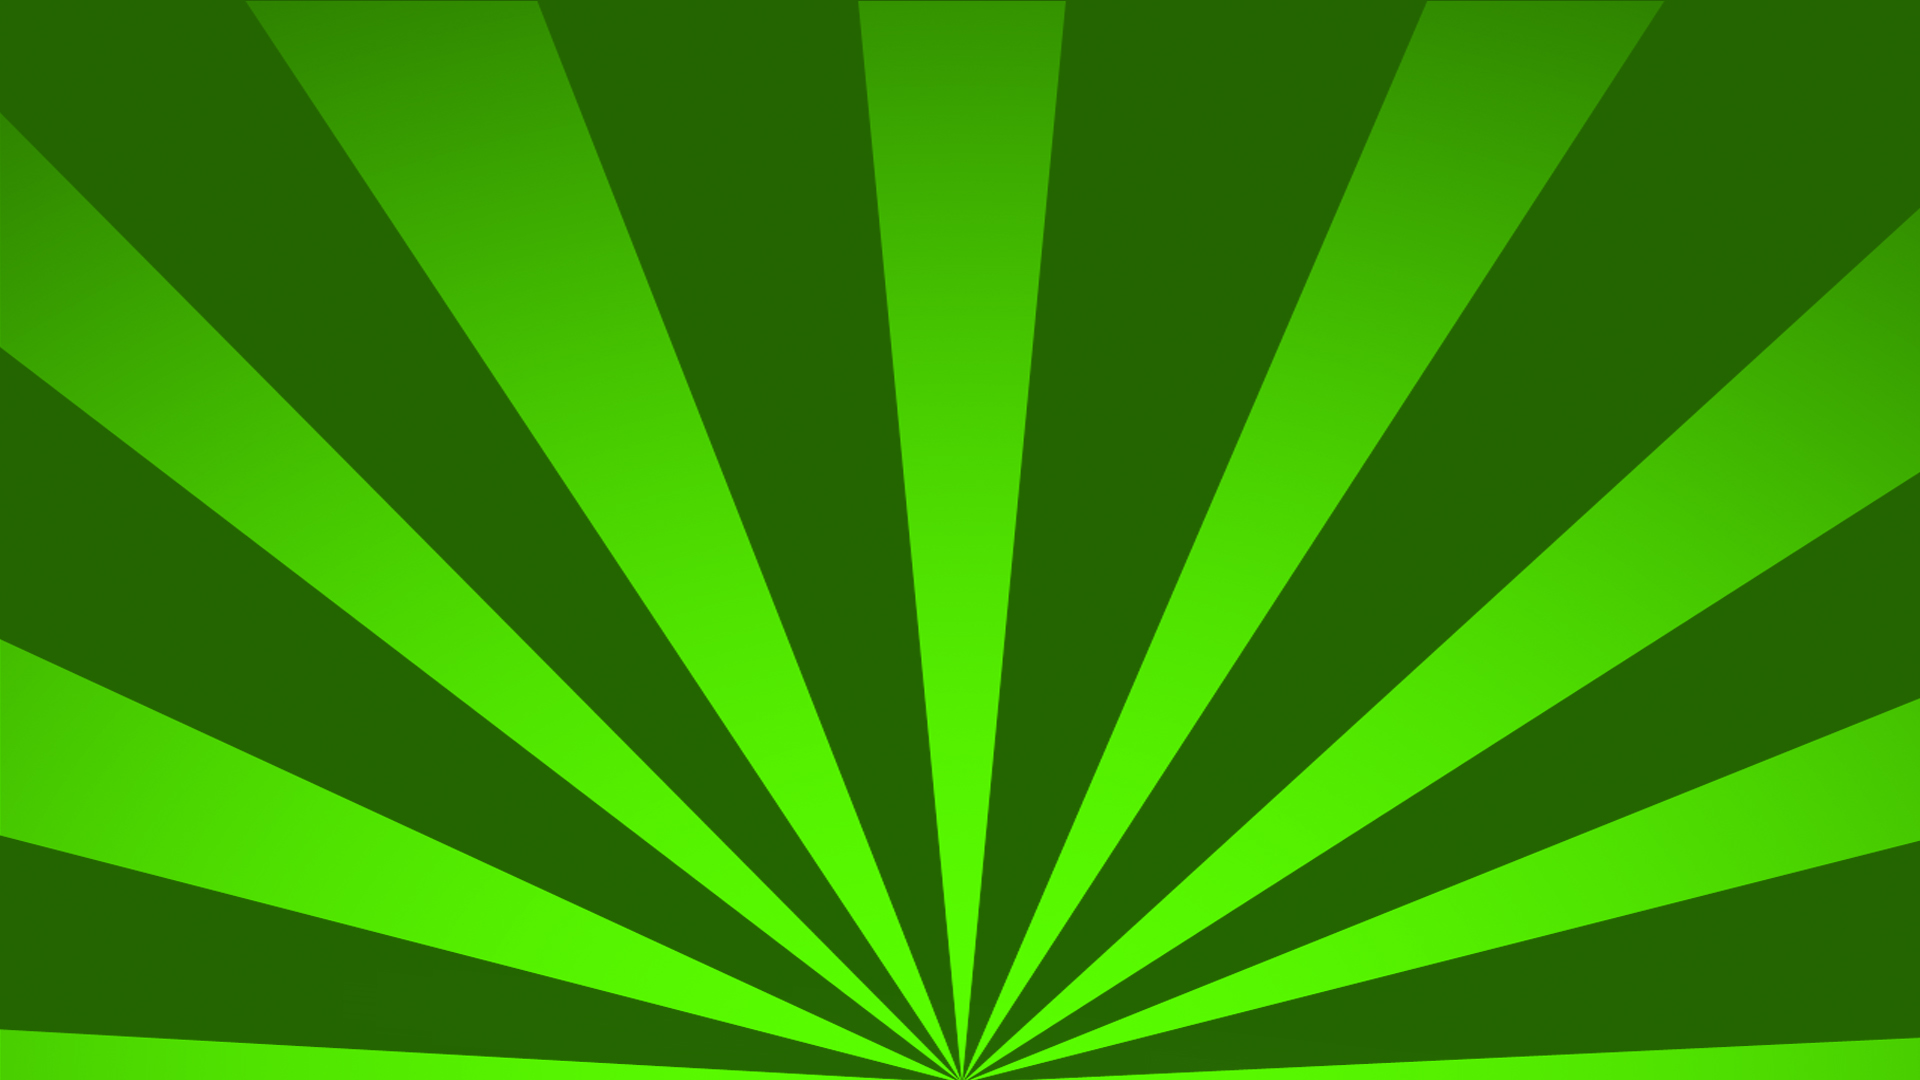 green rays background -#main